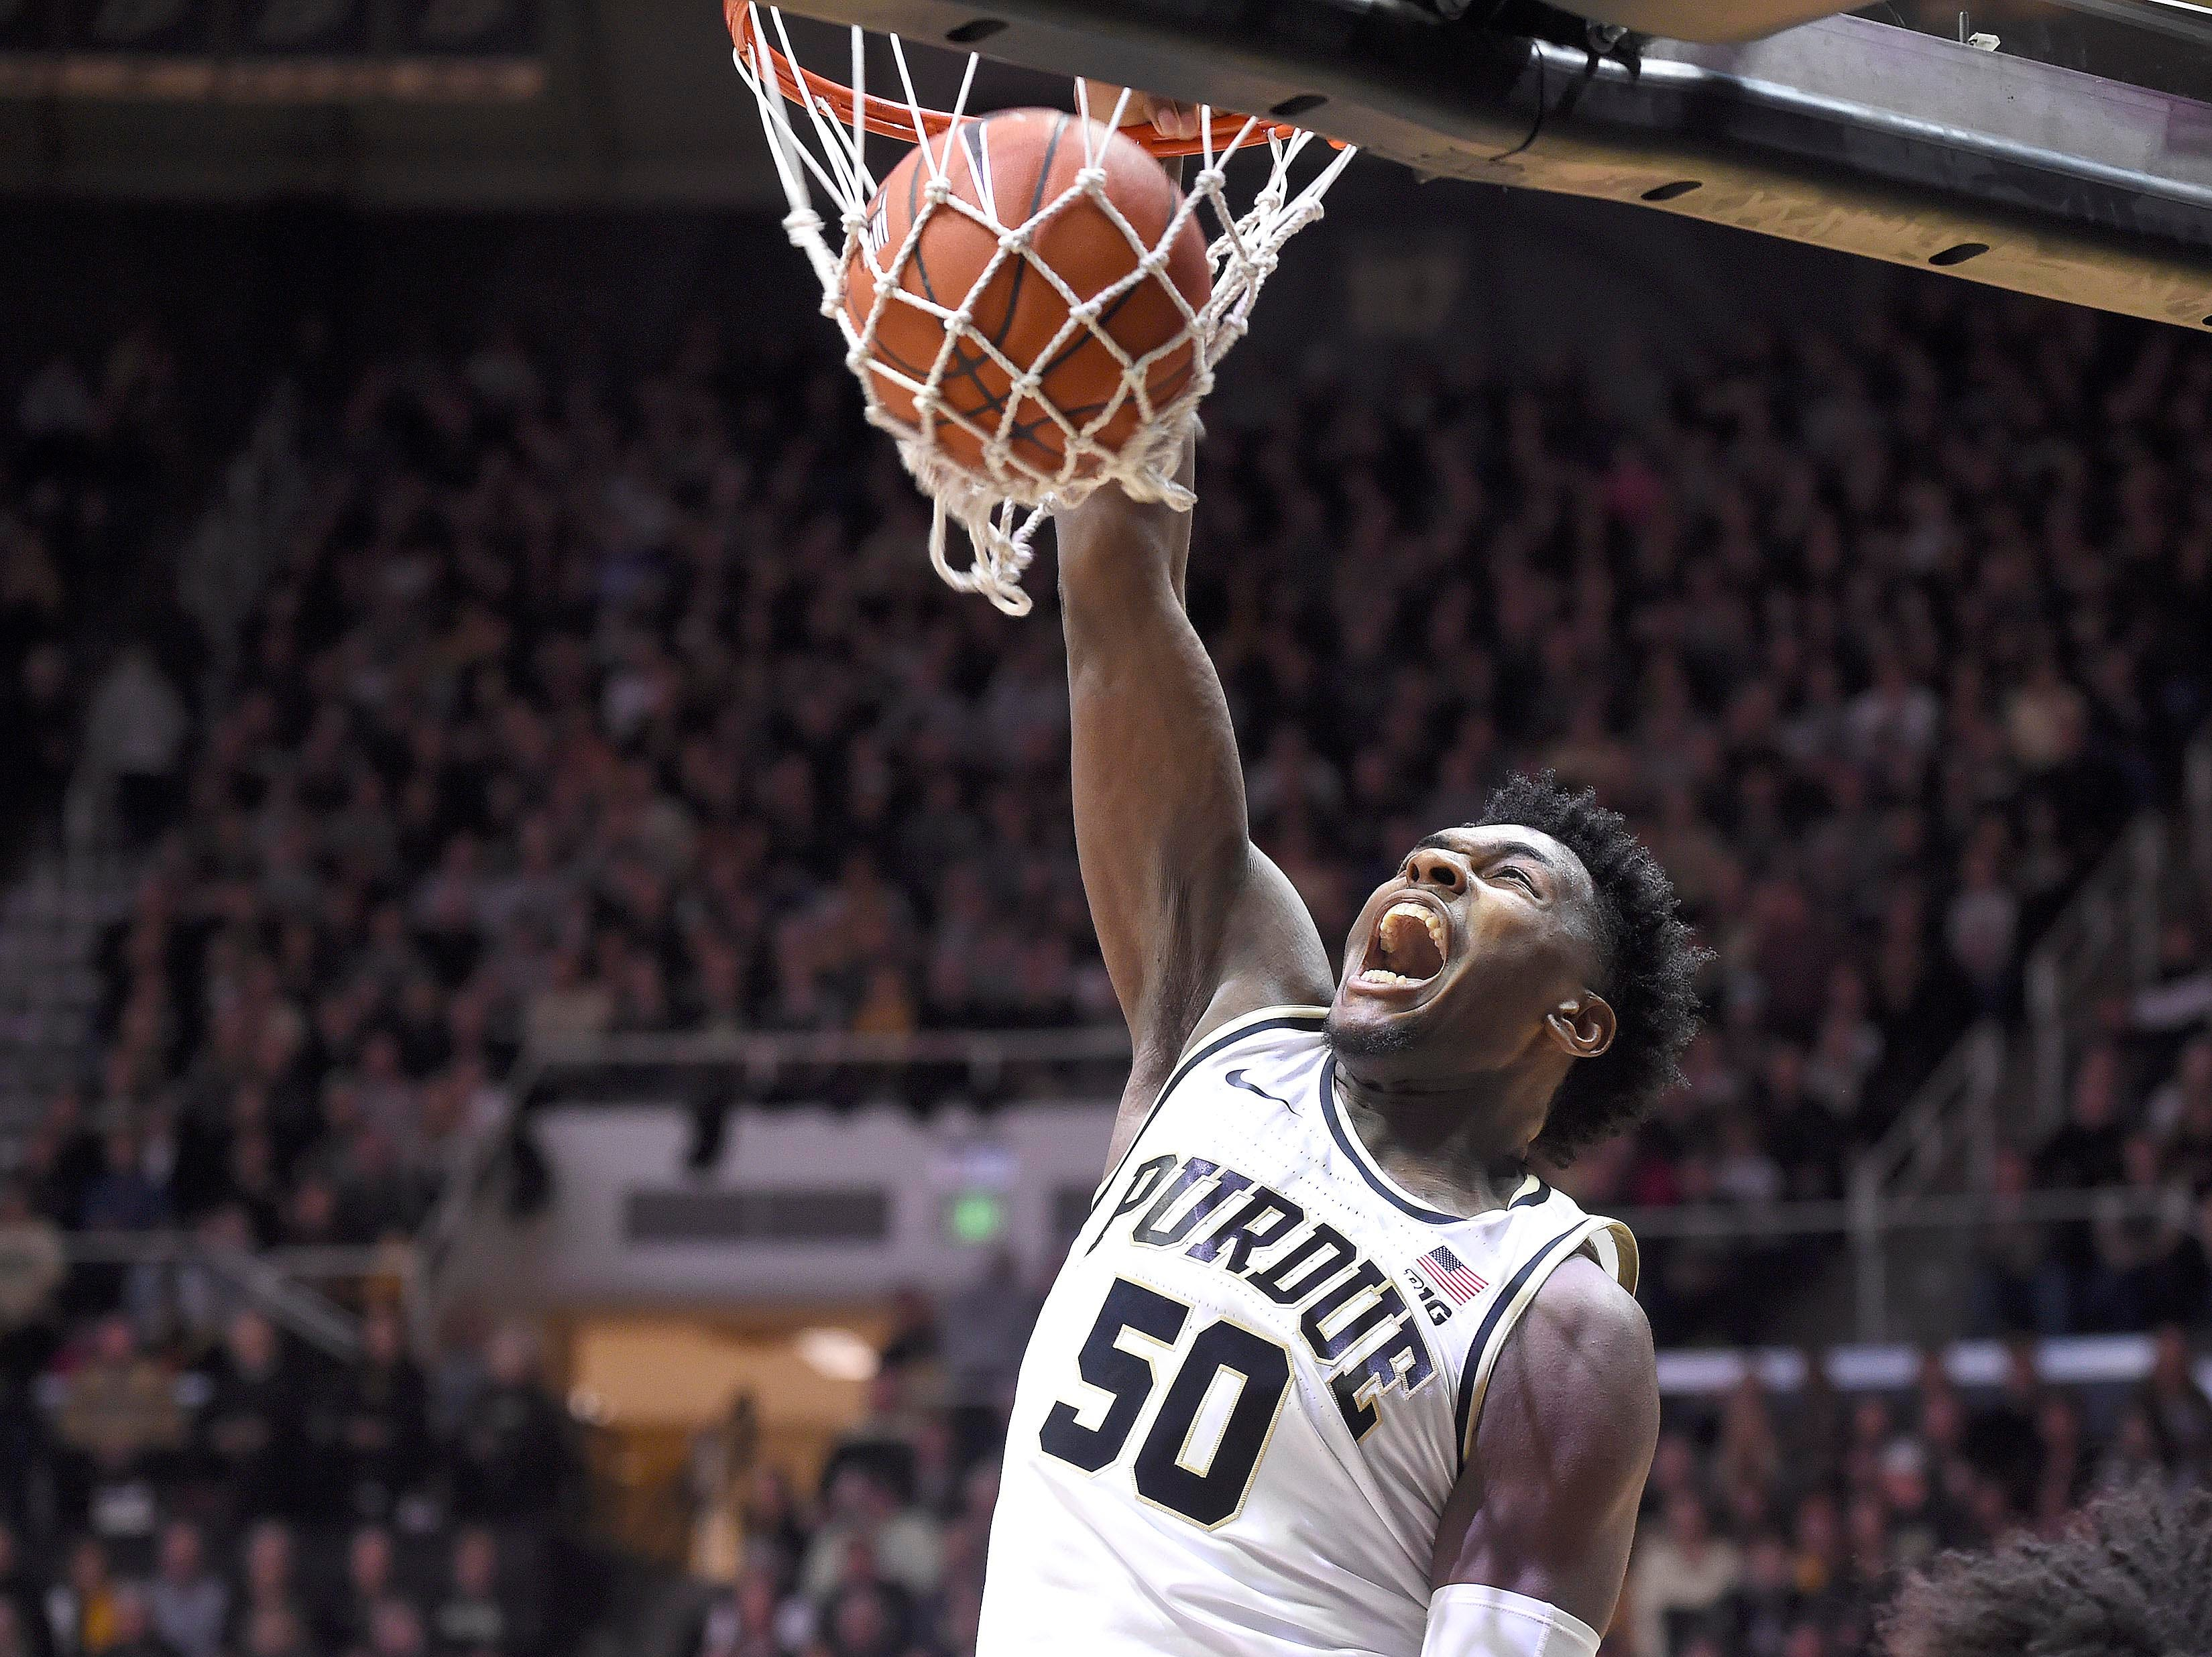 Feb 3, 2019; West Lafayette, IN, USA; Purdue Boilermakers forward Trevion Williams (50) dunks the ball against the Minnesota Golden Gophers in the first half at Mackey Arena. Mandatory Credit: Sandra Dukes-USA TODAY Sports